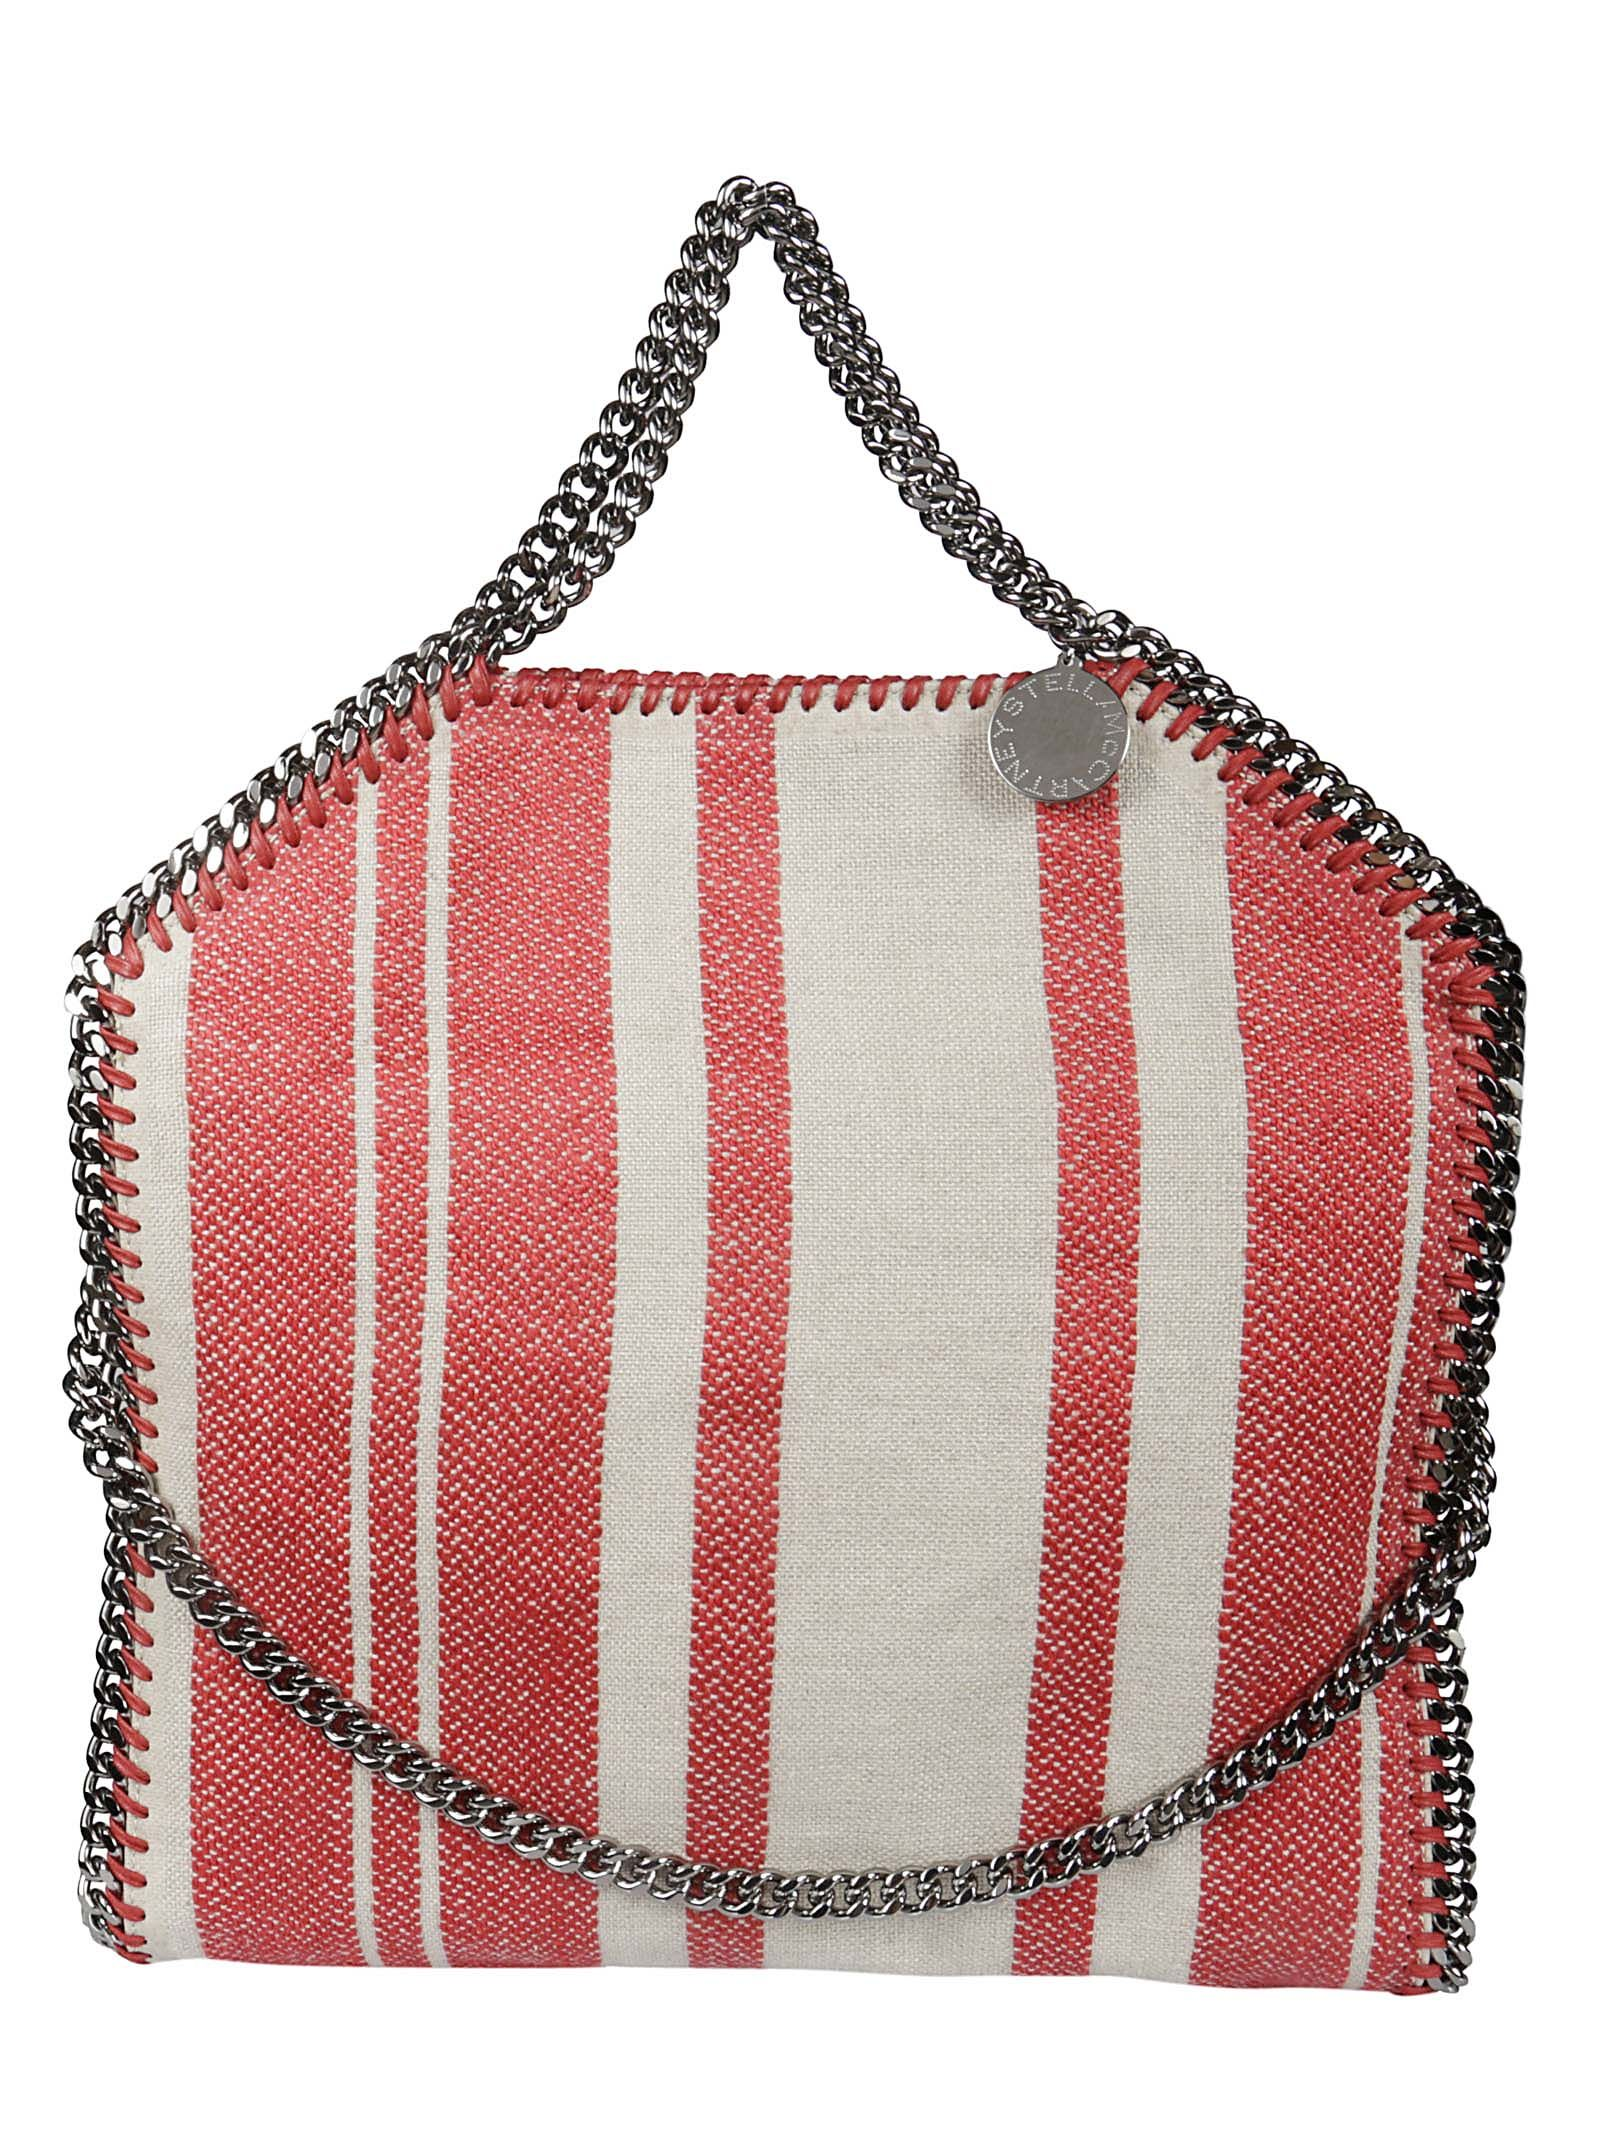 STELLA MCCARTNEY FALABELLA STRIPED TOTE